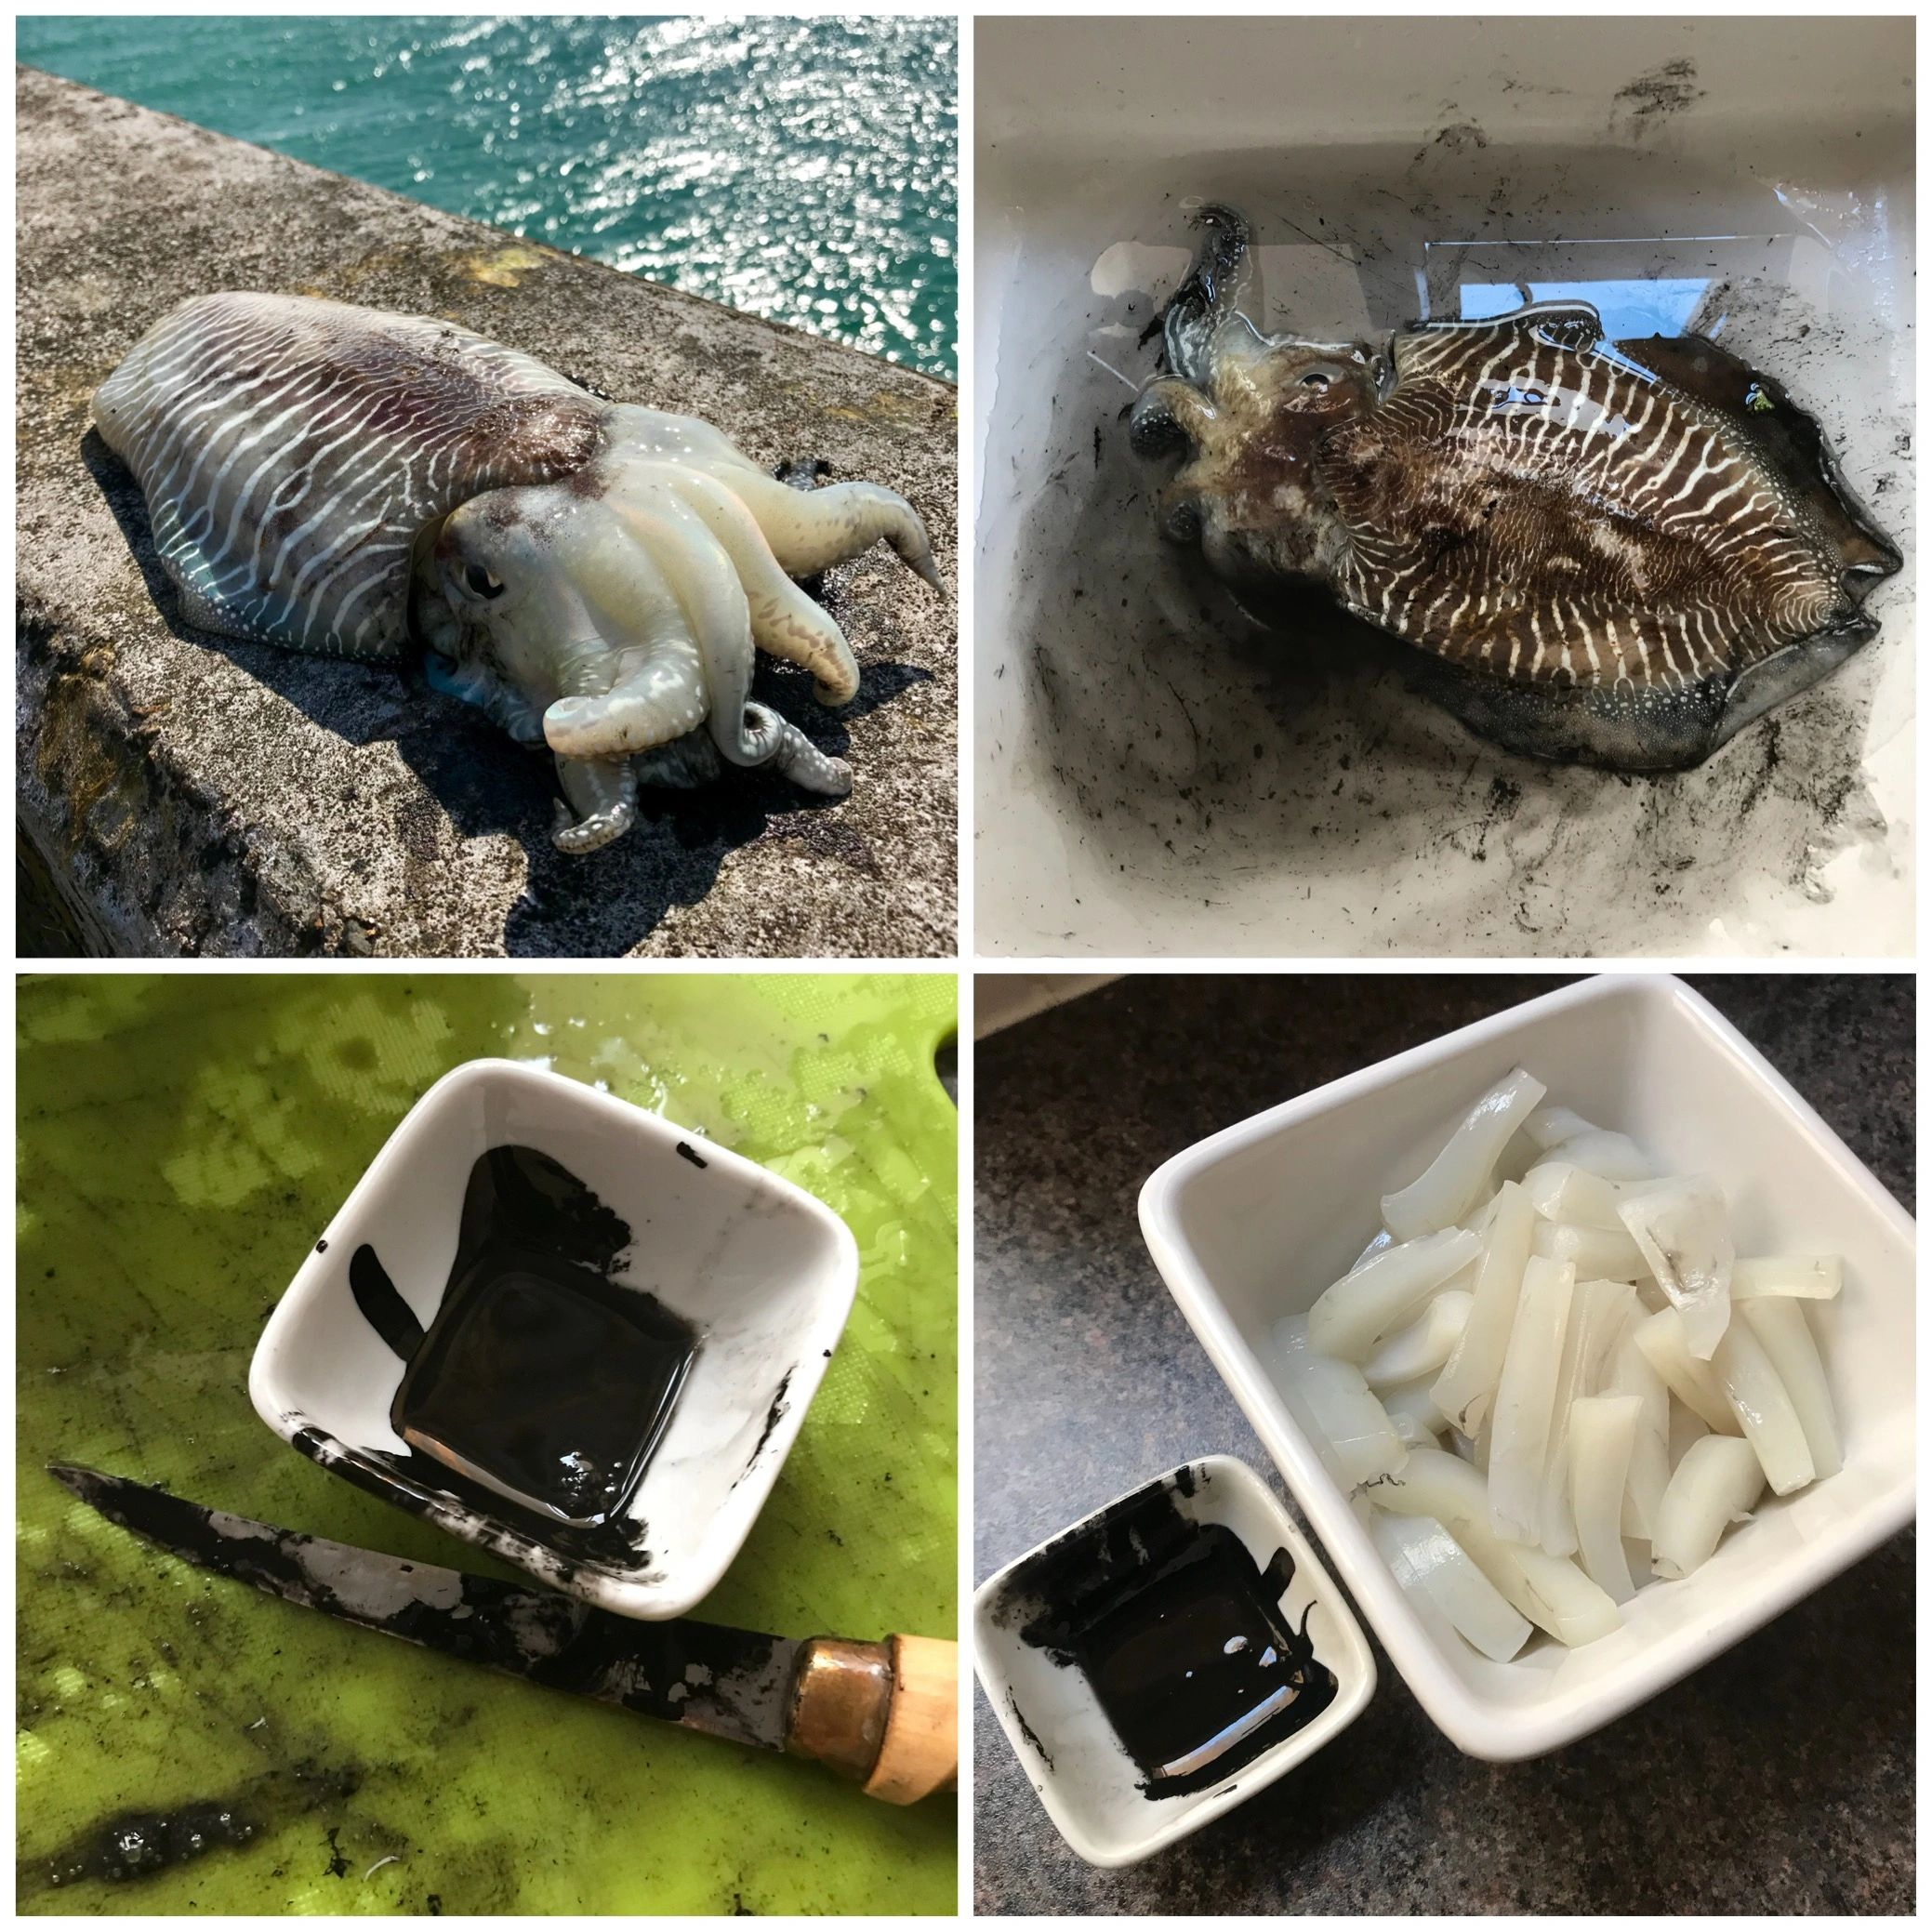 Brighton cuttlefish, cuttlefish preparation, cuttlefish ink, sepia, prepped cuttlefish ready to cook